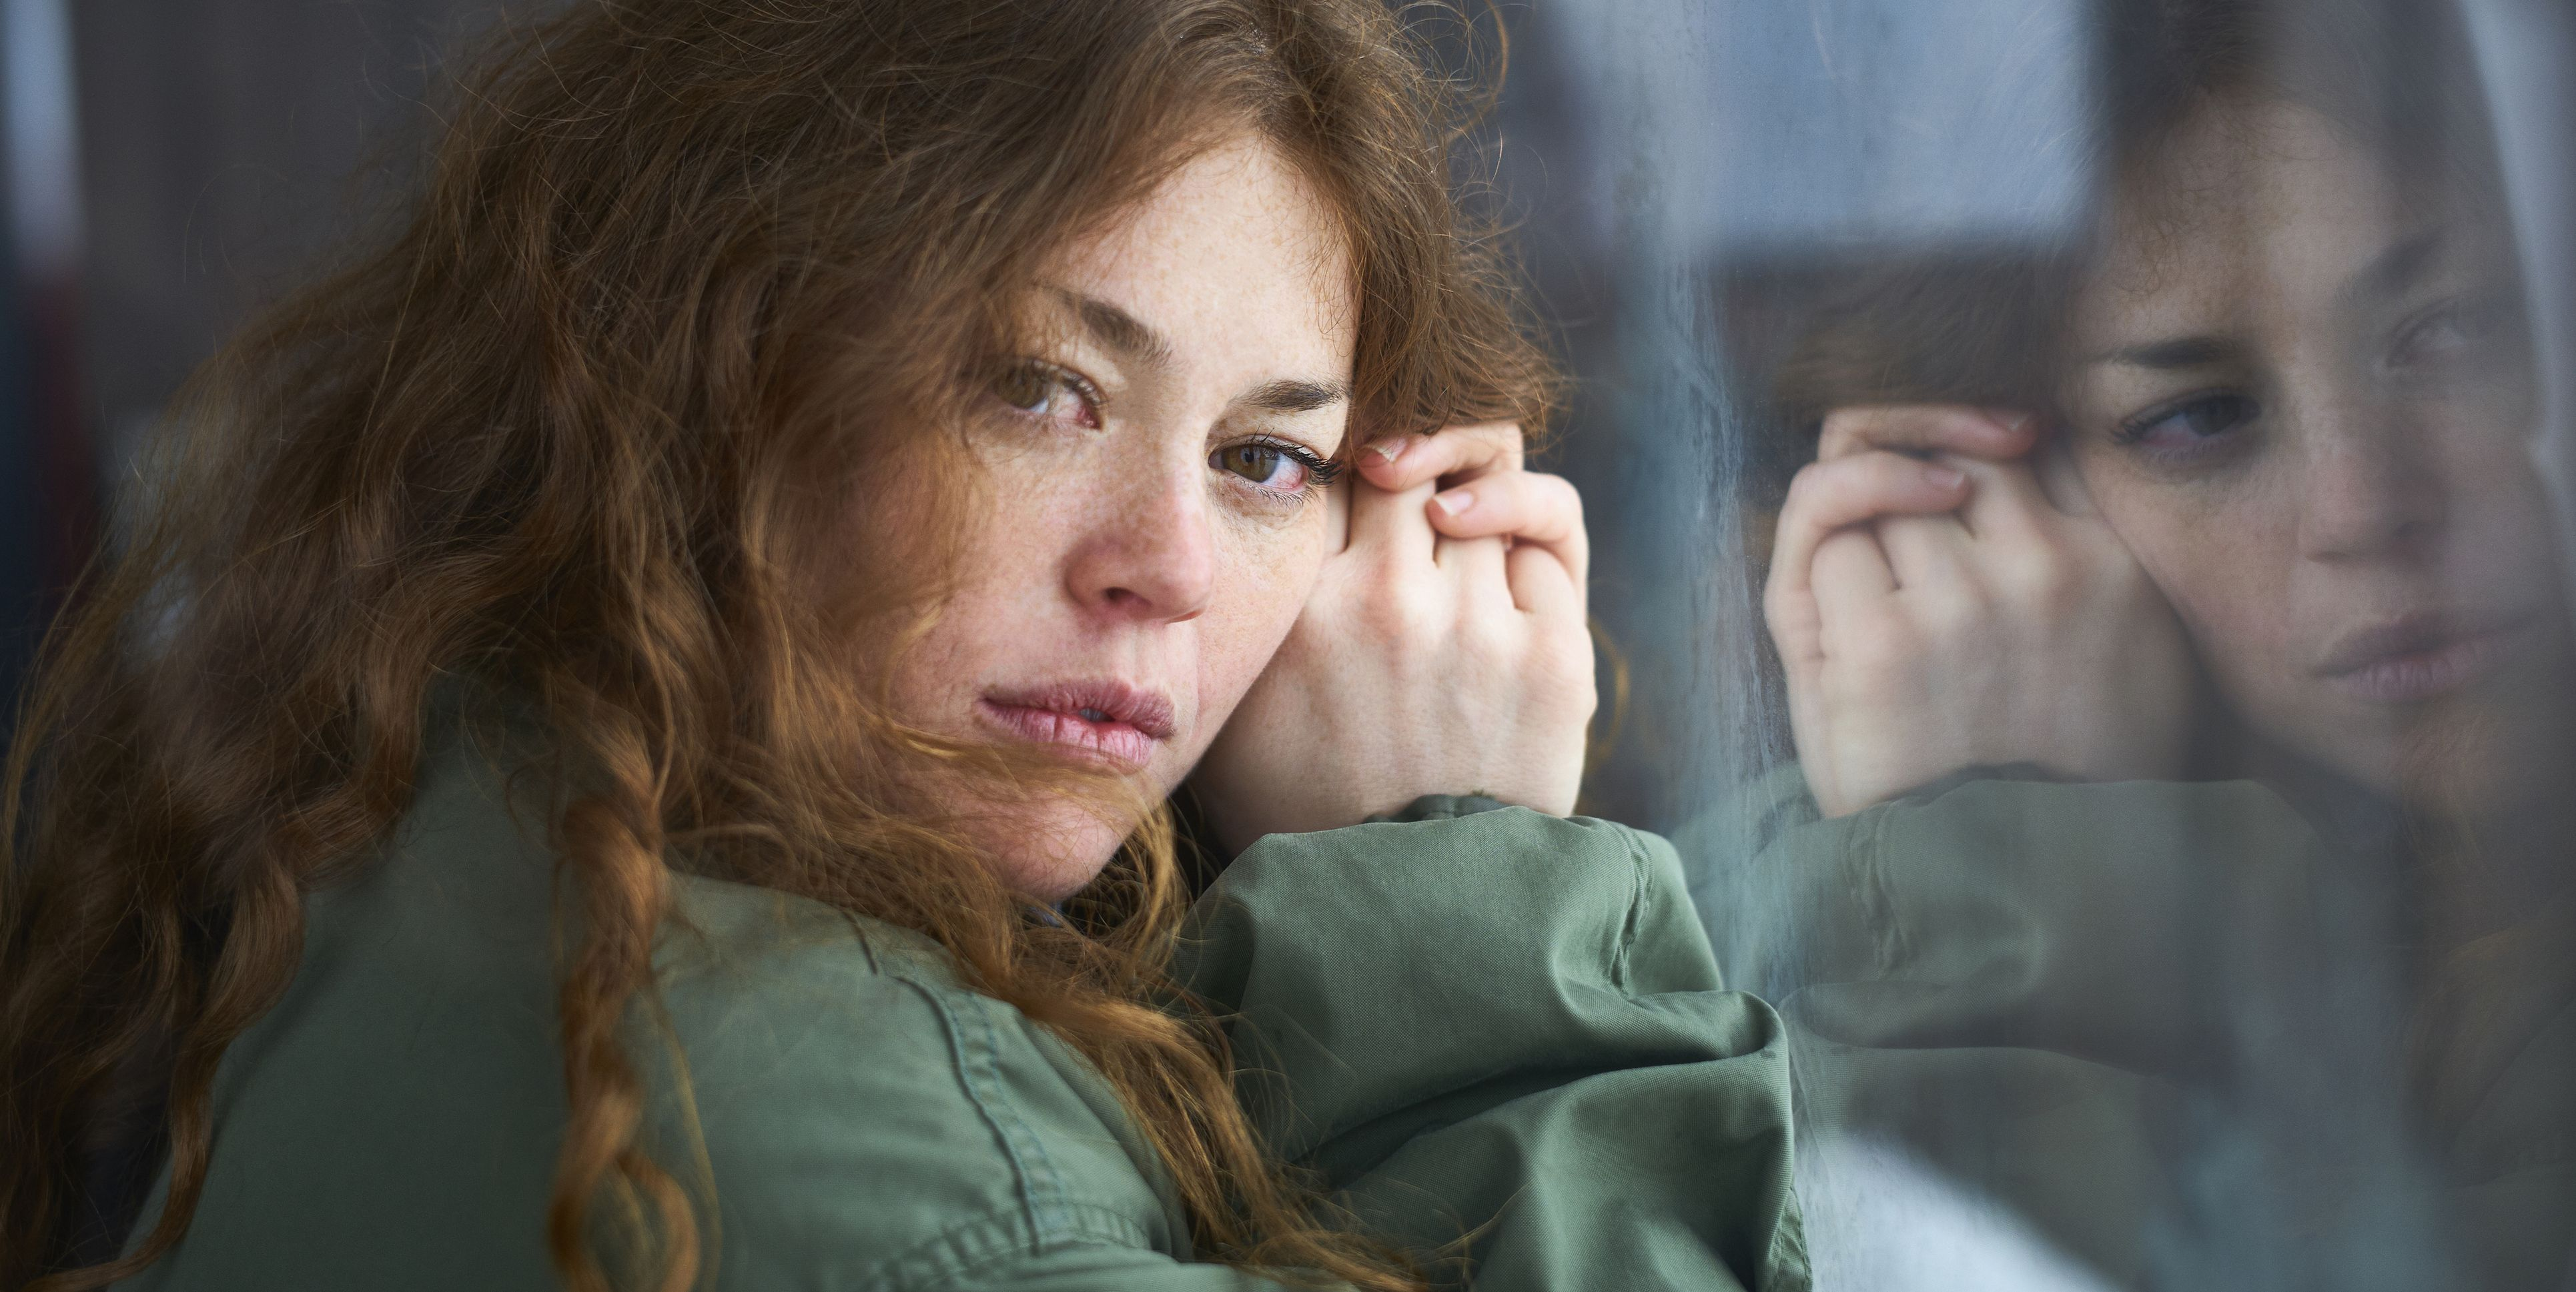 Portrait of a woman looking pensive into camera